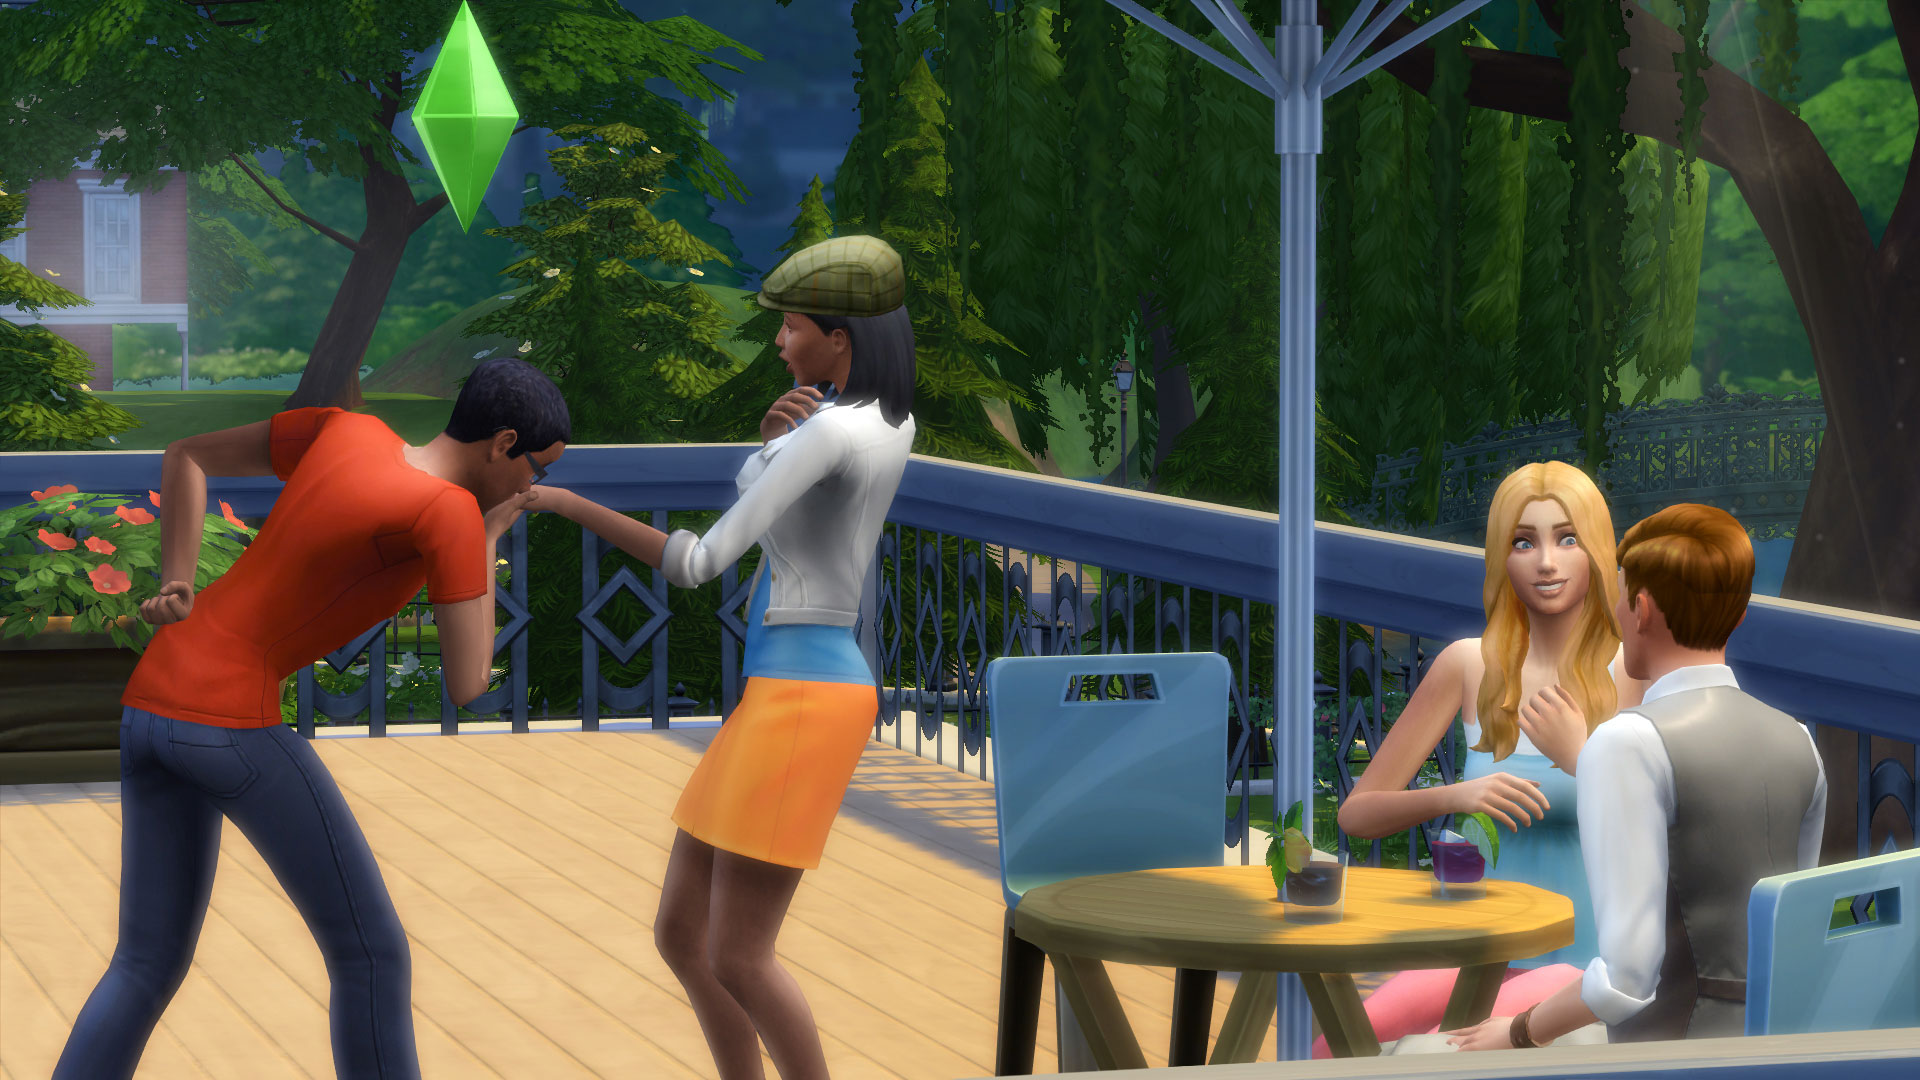 The Sims 4 digs deep into emotions, personalities and casual attire